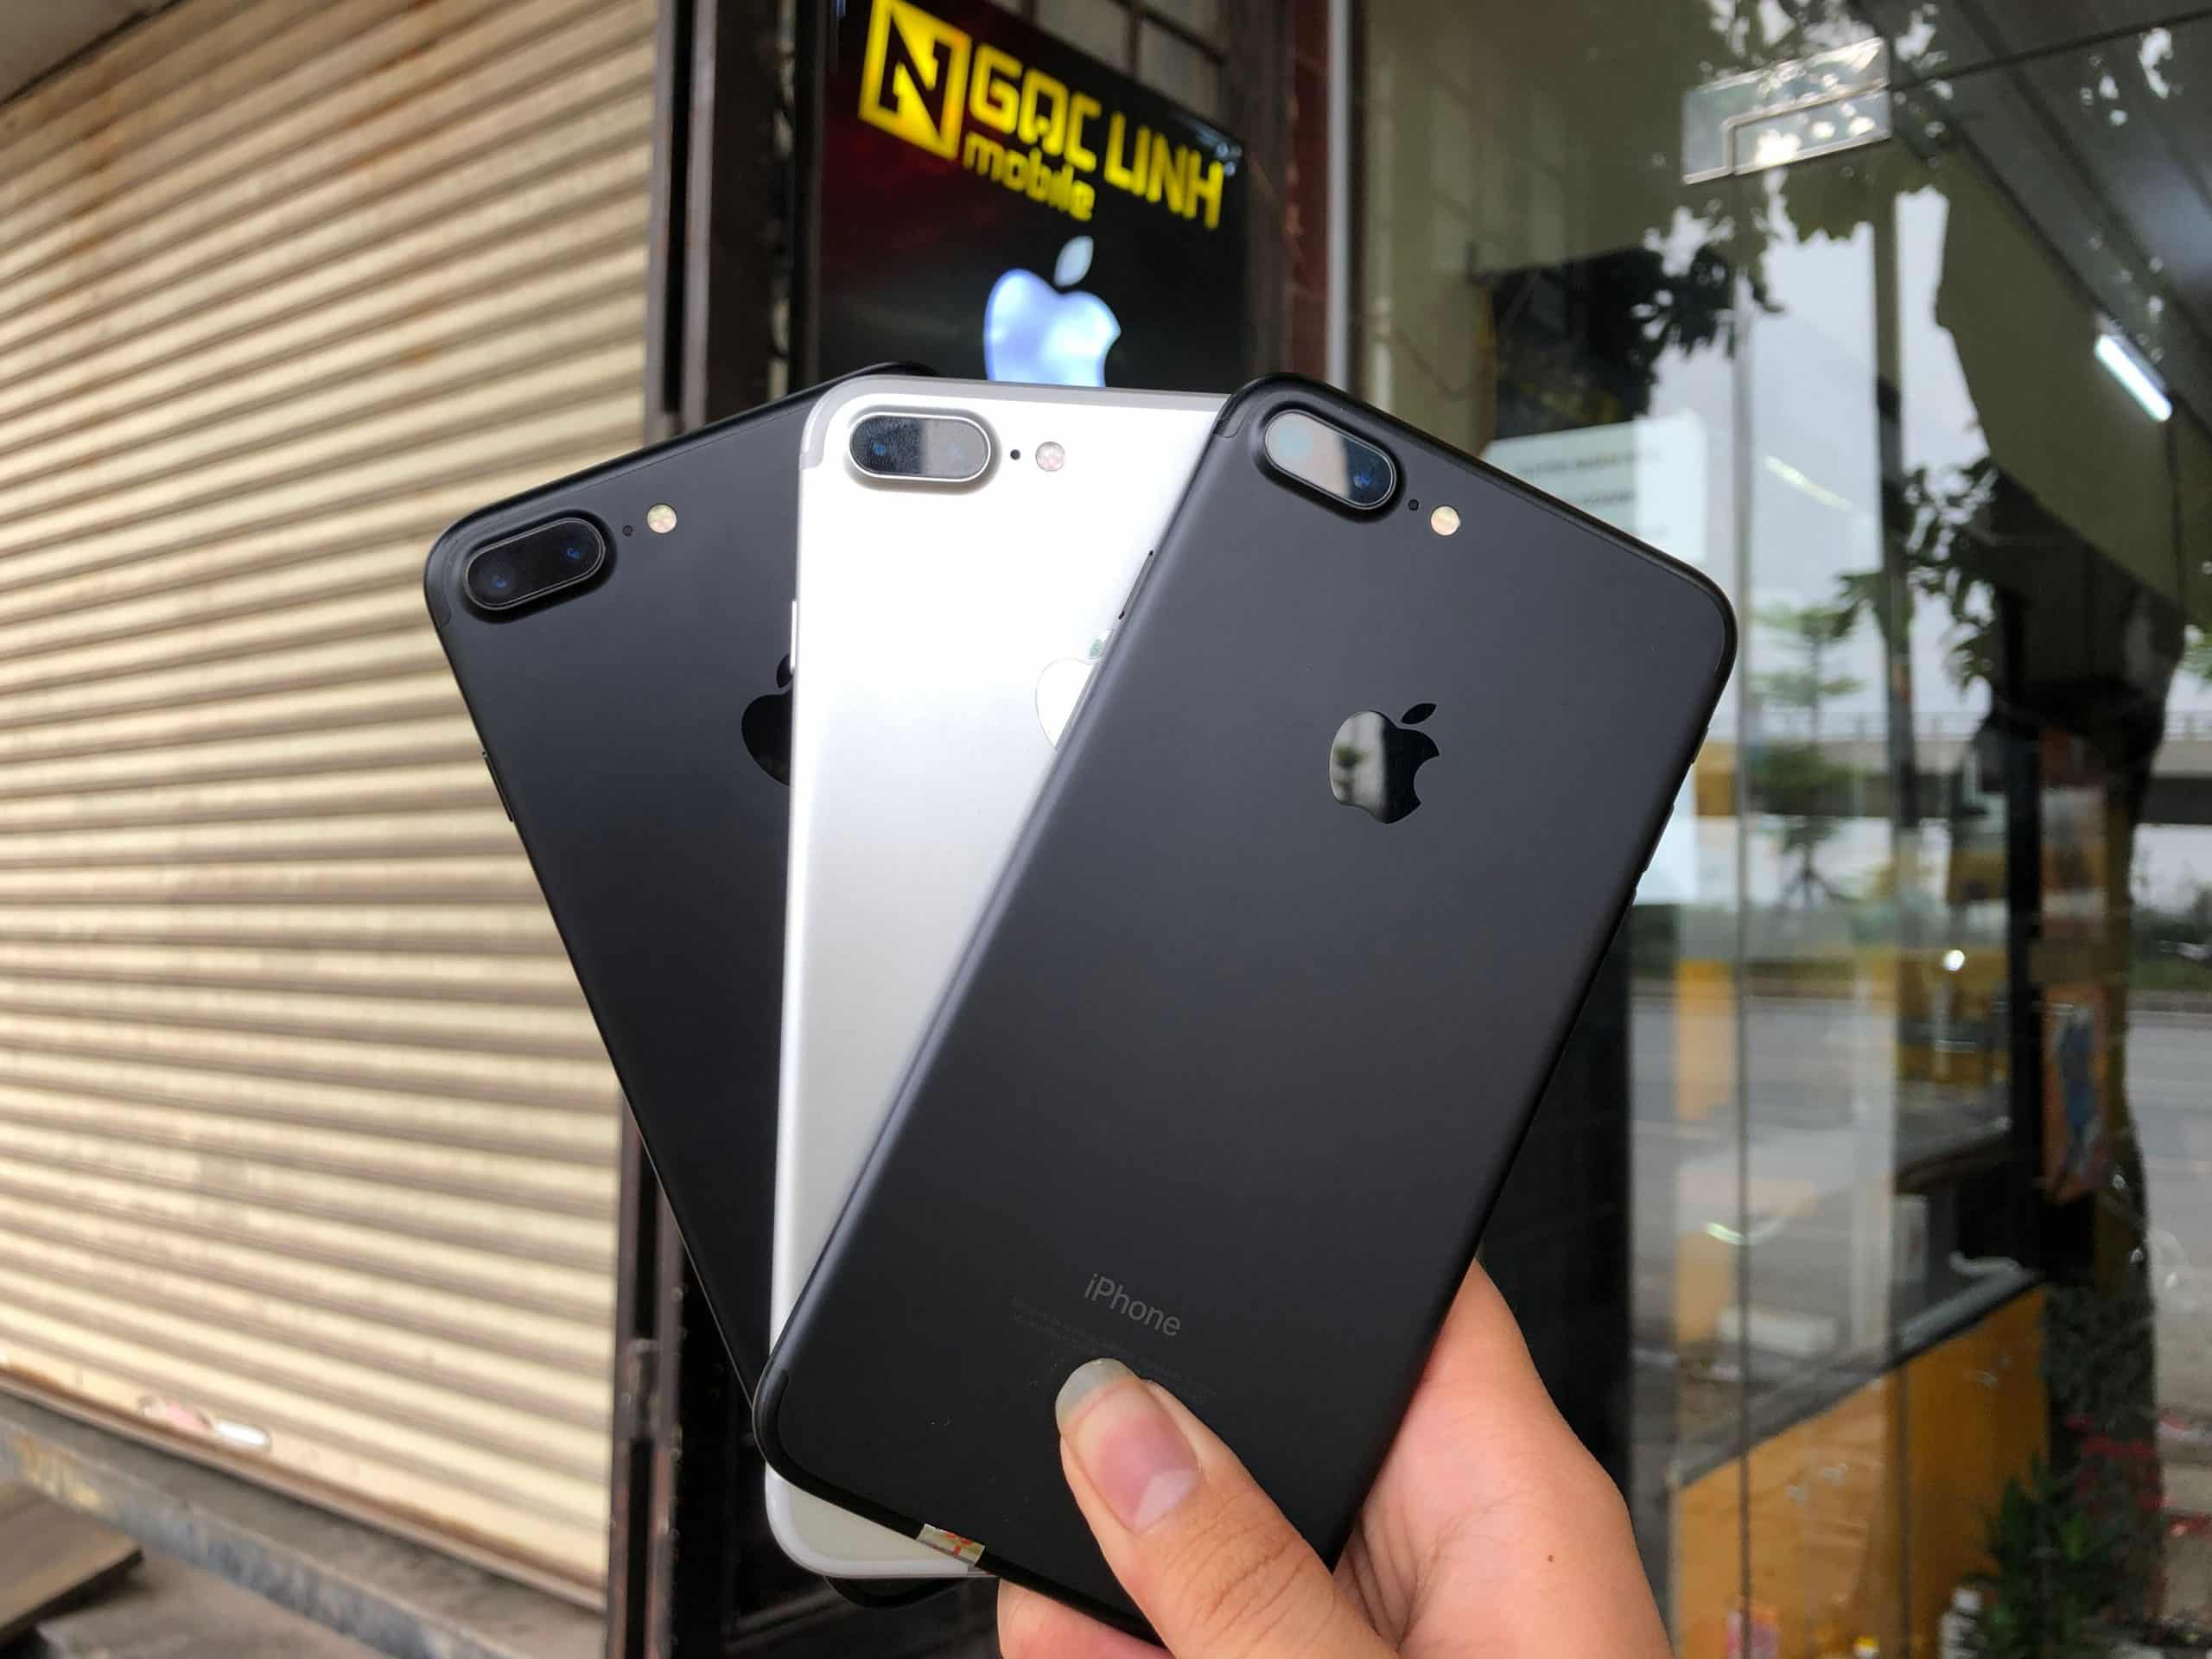 iphone hàng lướt, Camera iphone 7 plus, Nên mua Iphone 7 Plus